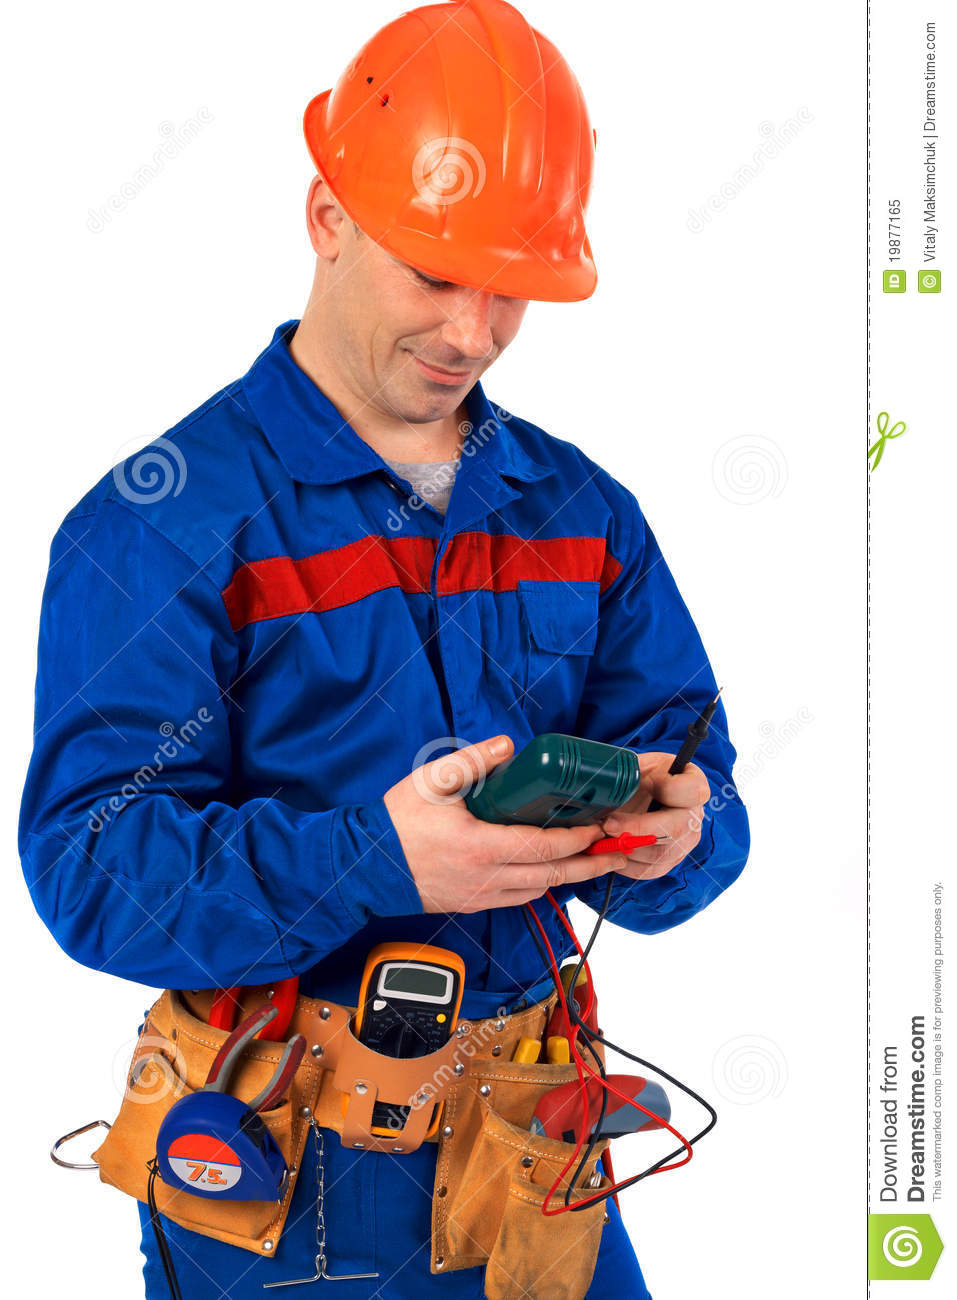 With Electrical Tool Stock Image Image Of Tehnology